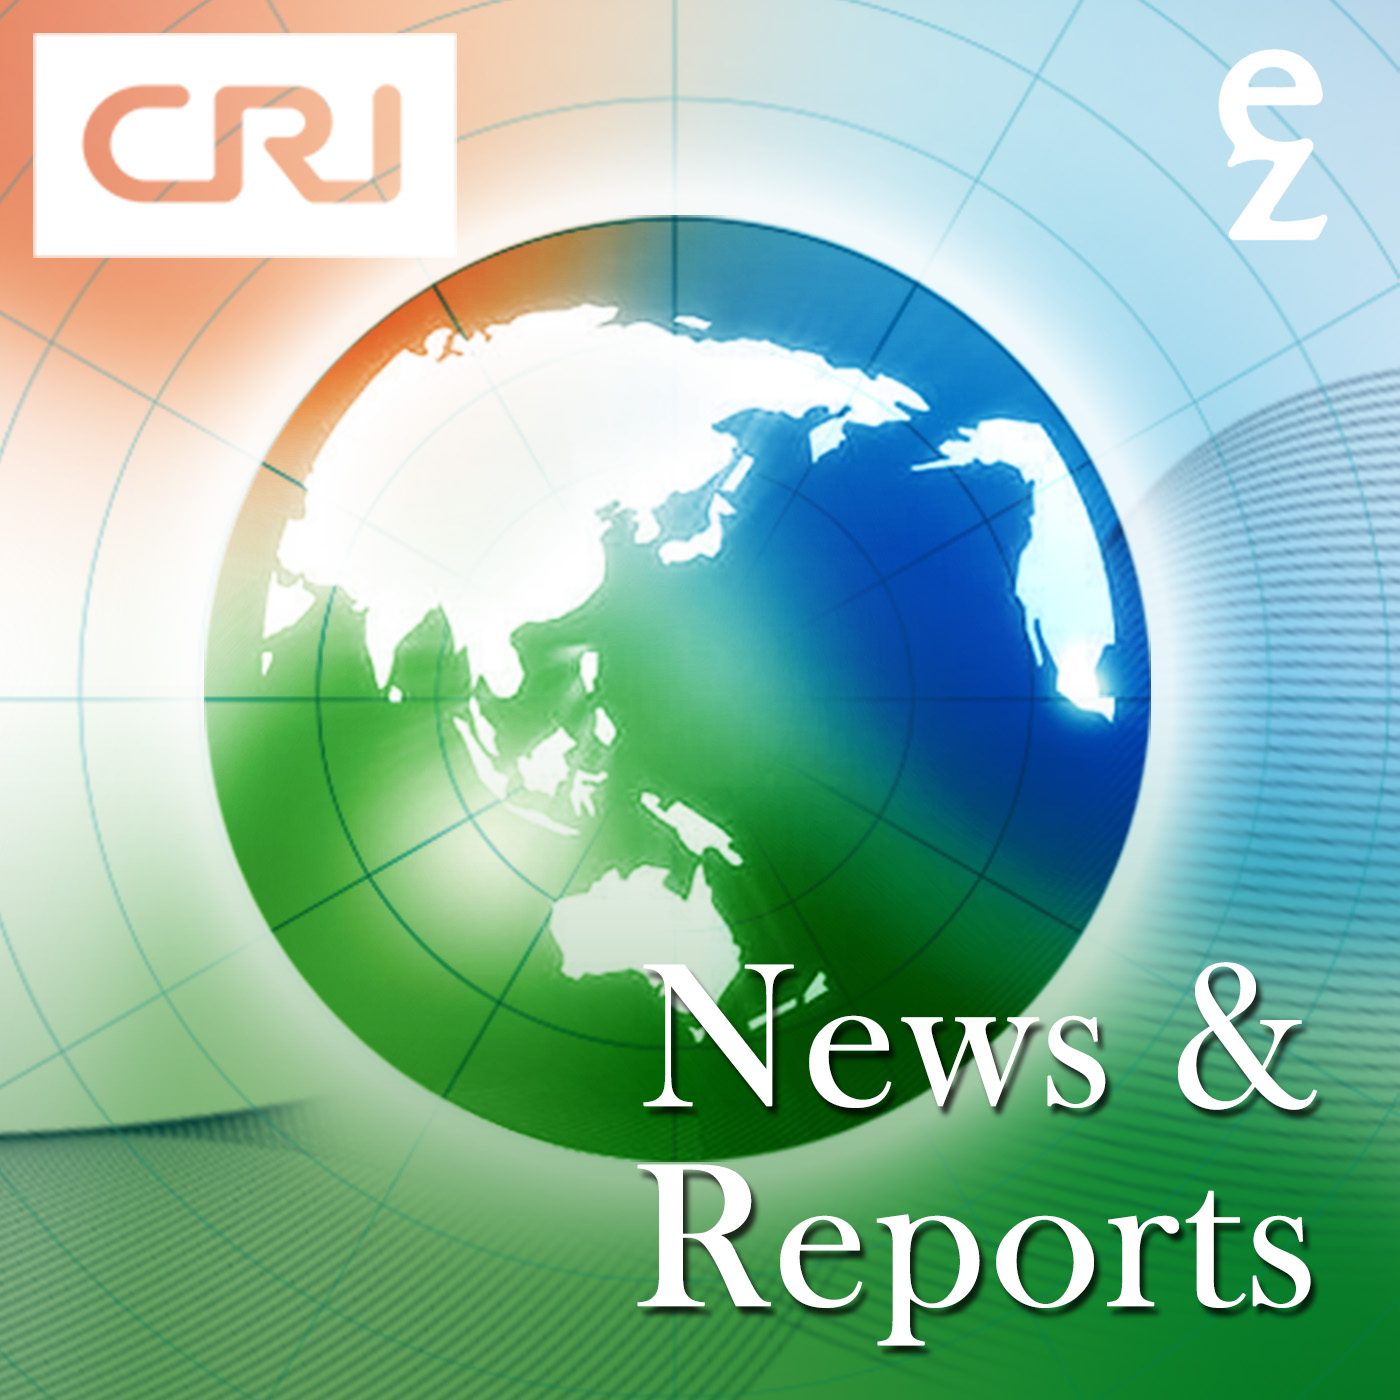 News & Reports